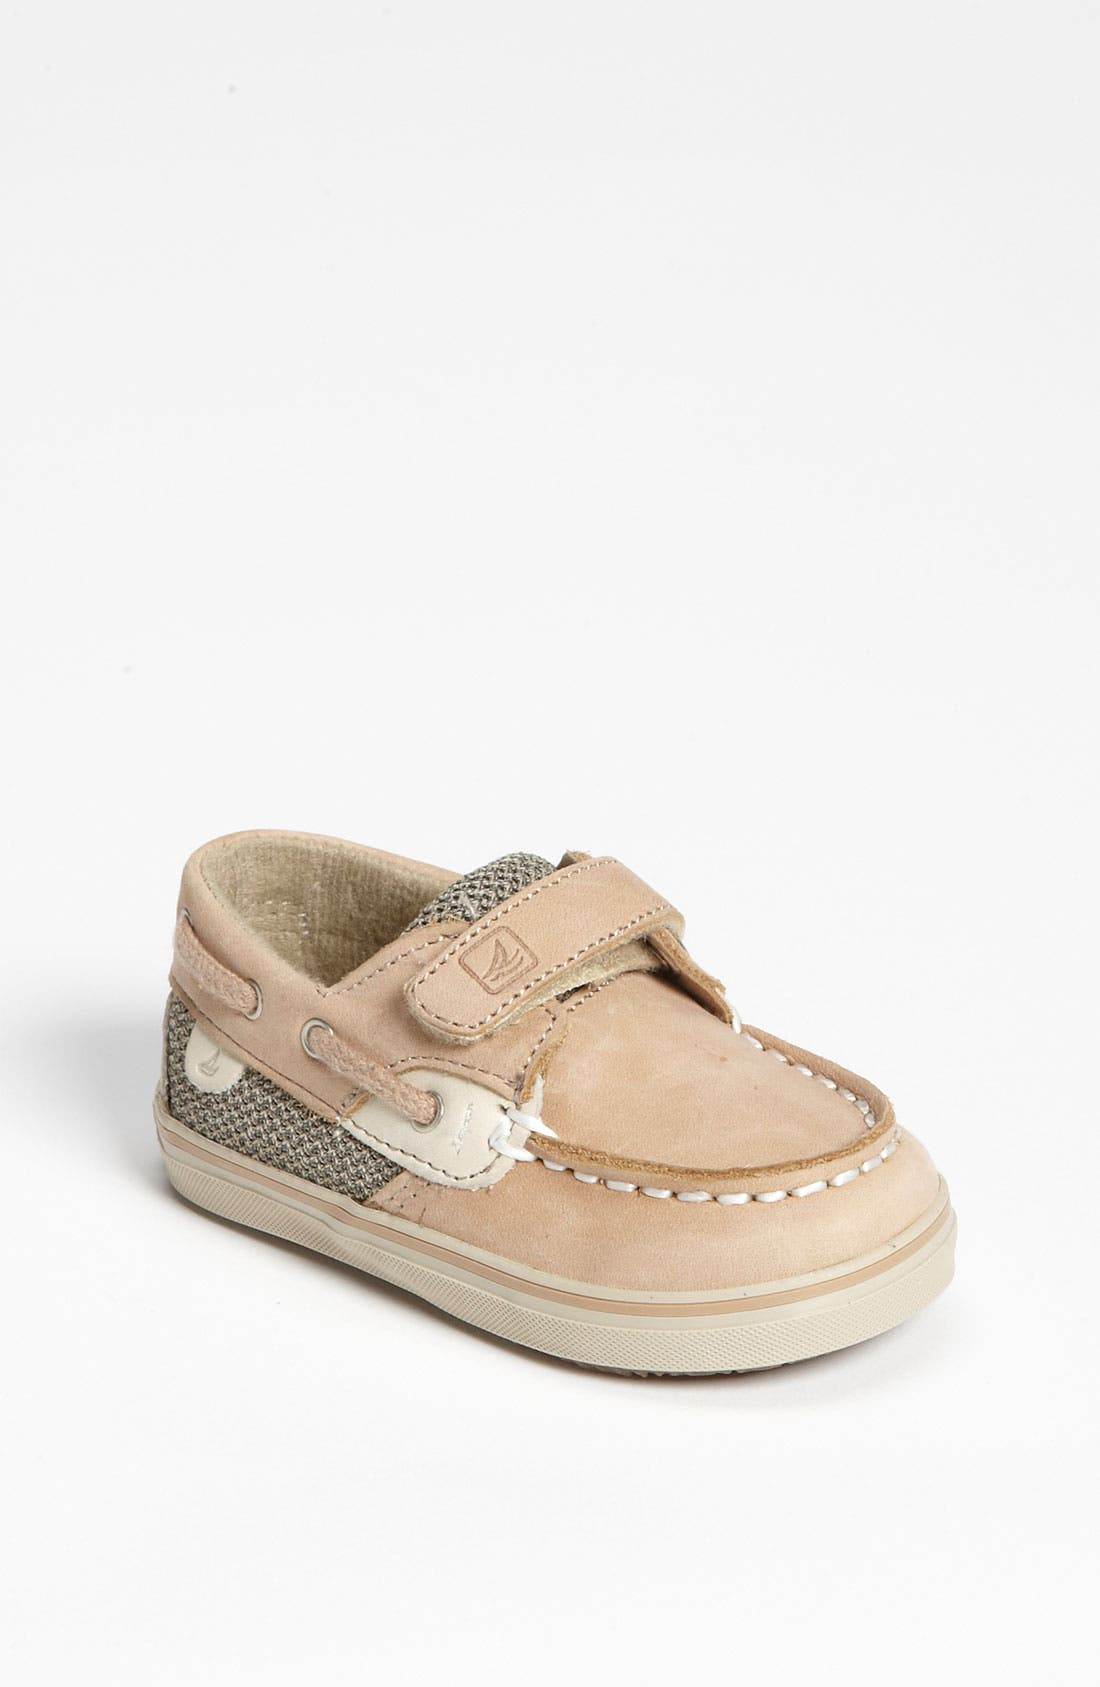 Main Image - Sperry Kids 'Bluefish' Boat Shoe (Baby)